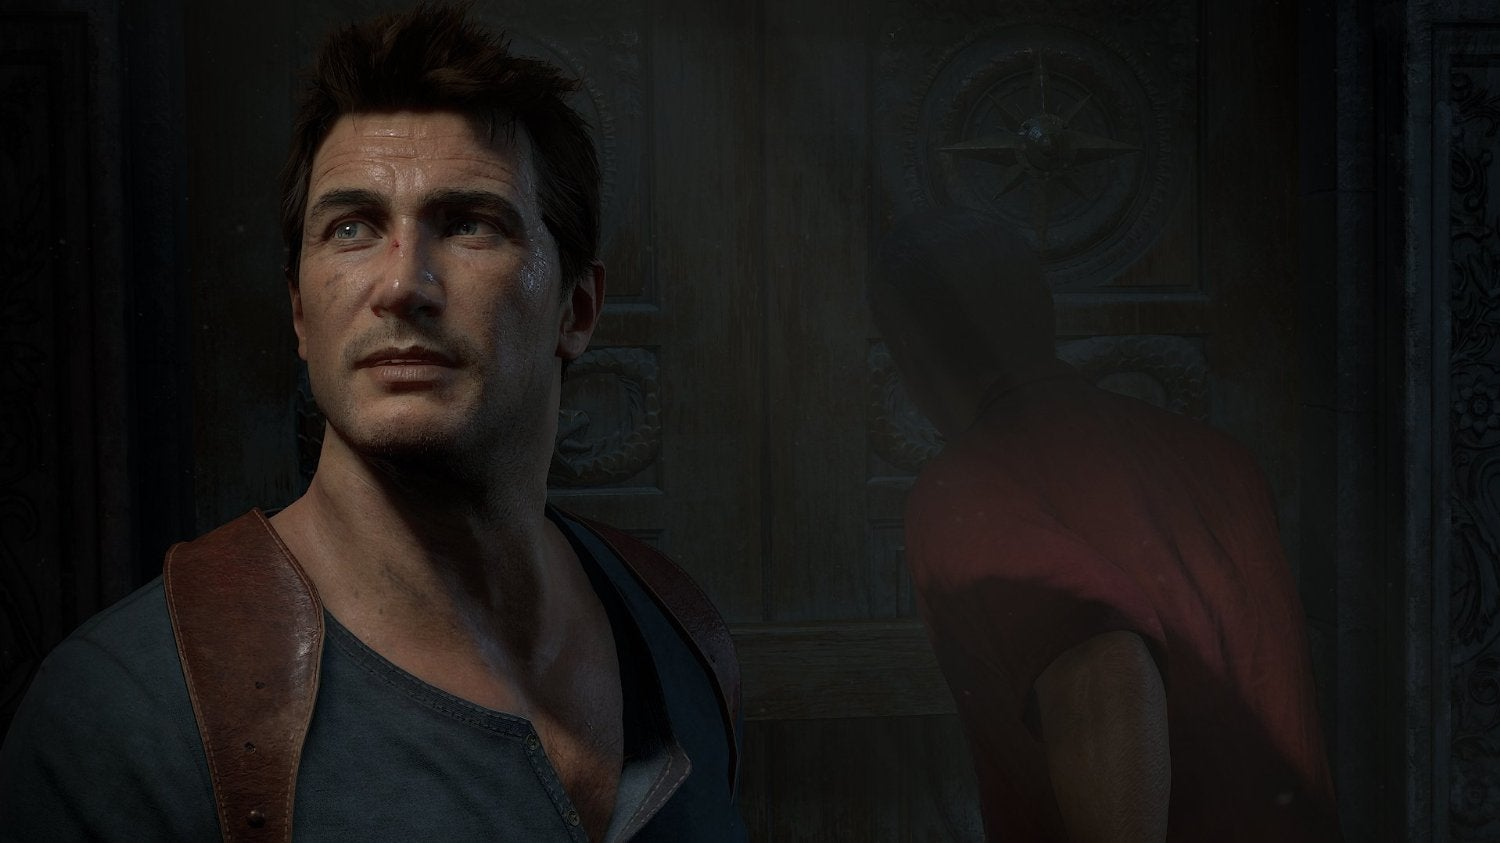 The New Director Of Uncharted Is In 'Secret' Conversations To Cast Nathan Drake